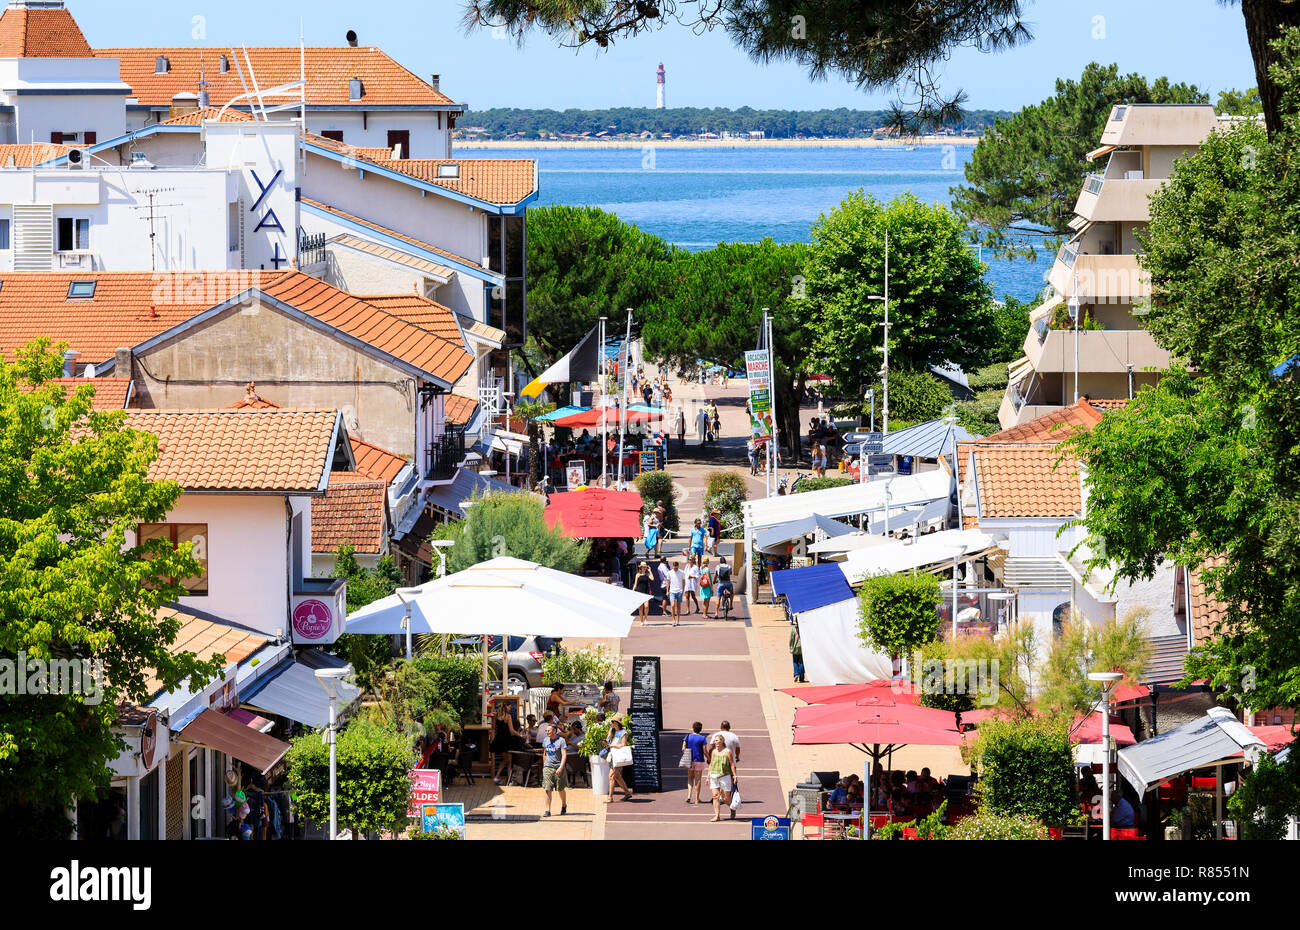 Arcachon France High Resolution Stock Photography And Images Alamy